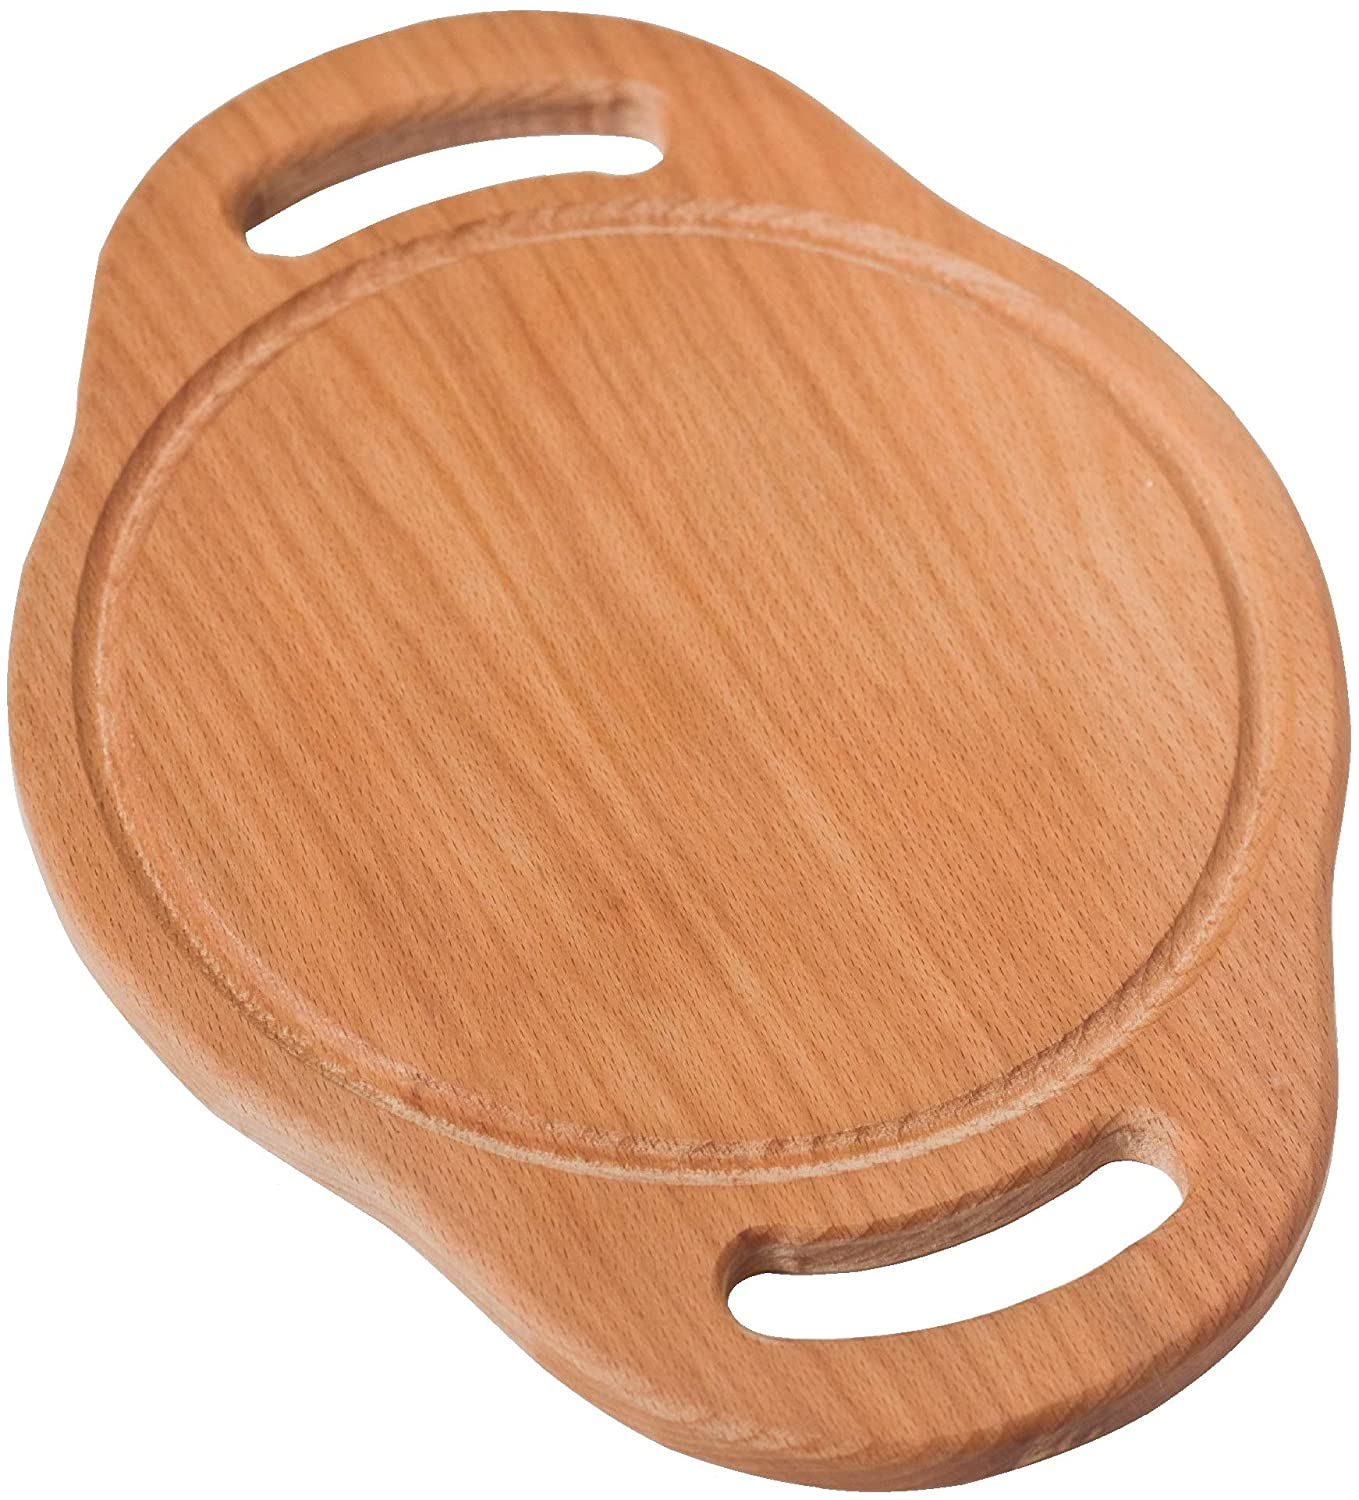 ECOSALL Round Wooden Cutting Board With Handles & Juice Groove